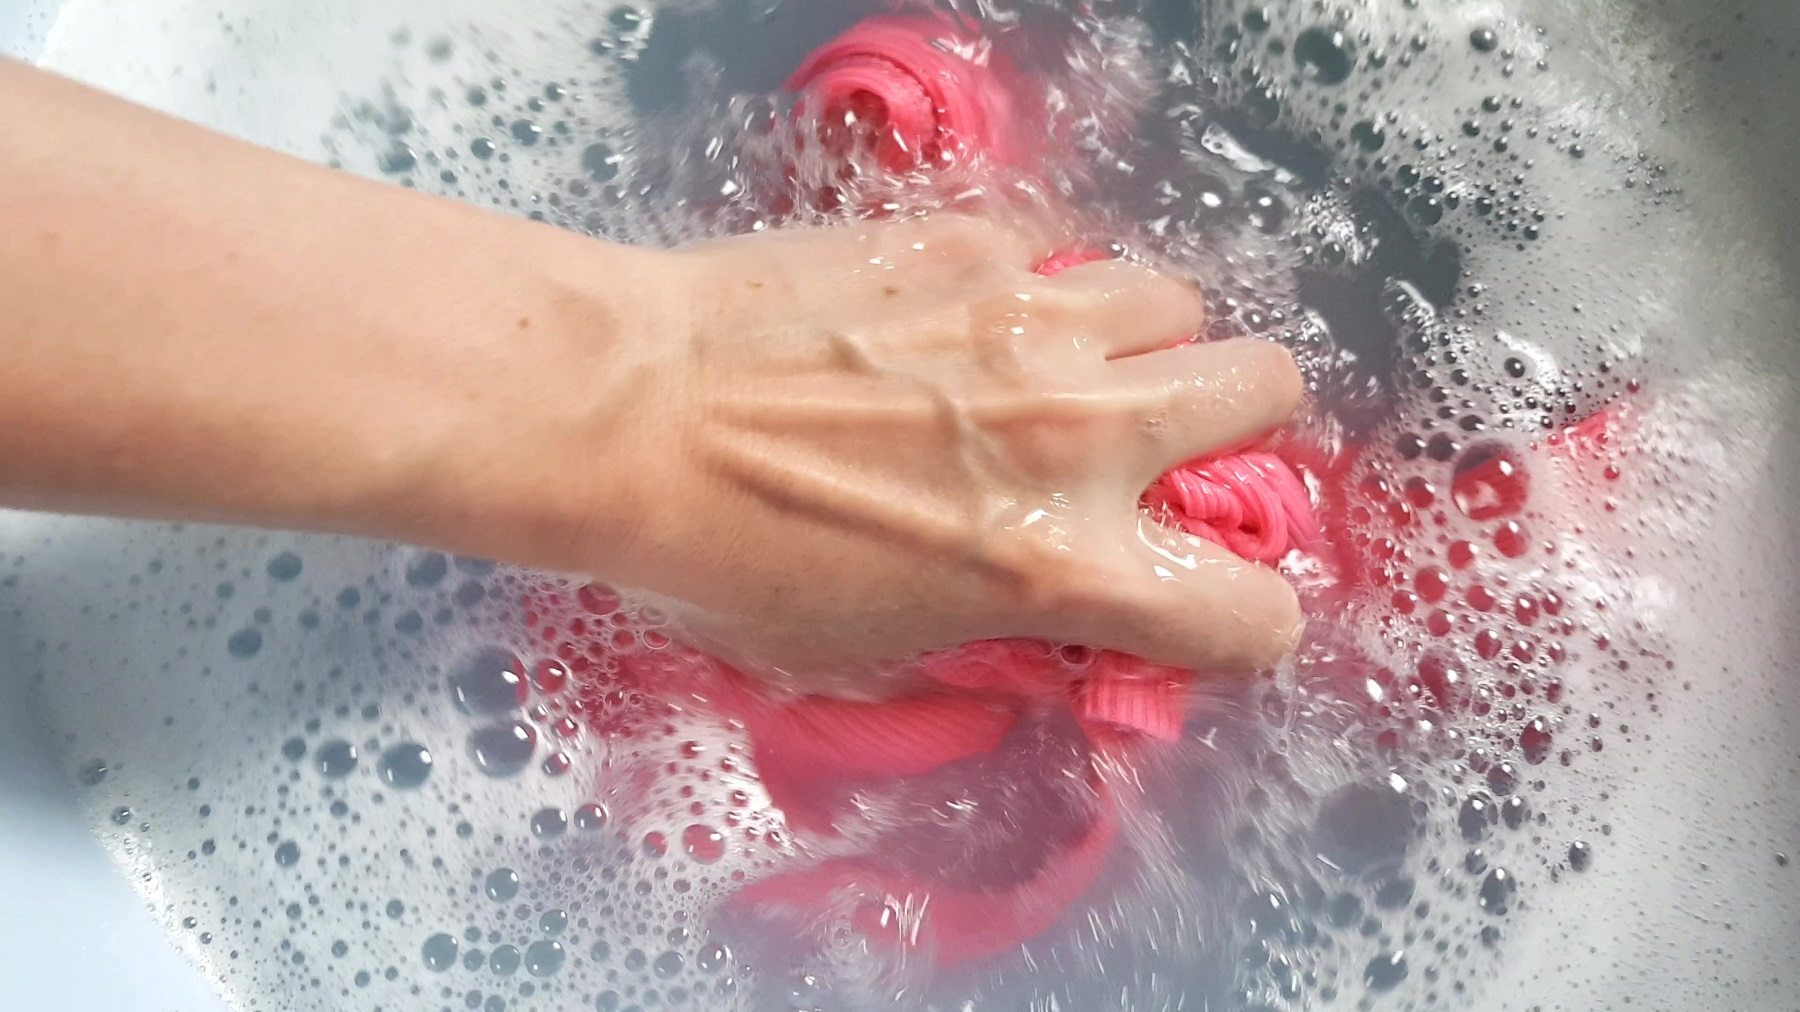 Female hand wash a pink T-shirt in a basin